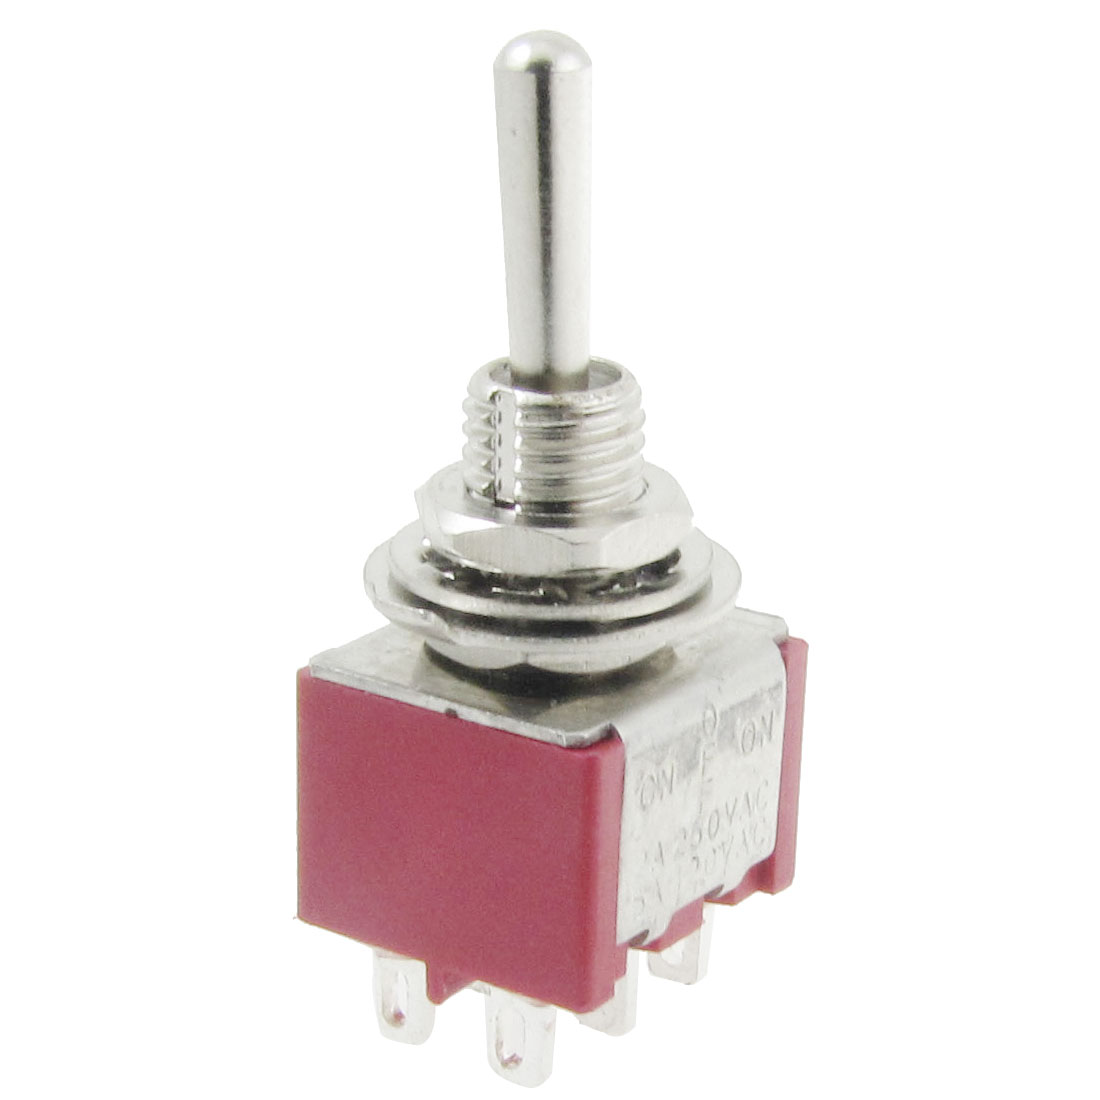 Momentary ON/OFF/Momentary ON 3 Position DPDT 6 Pins Toggle Switch